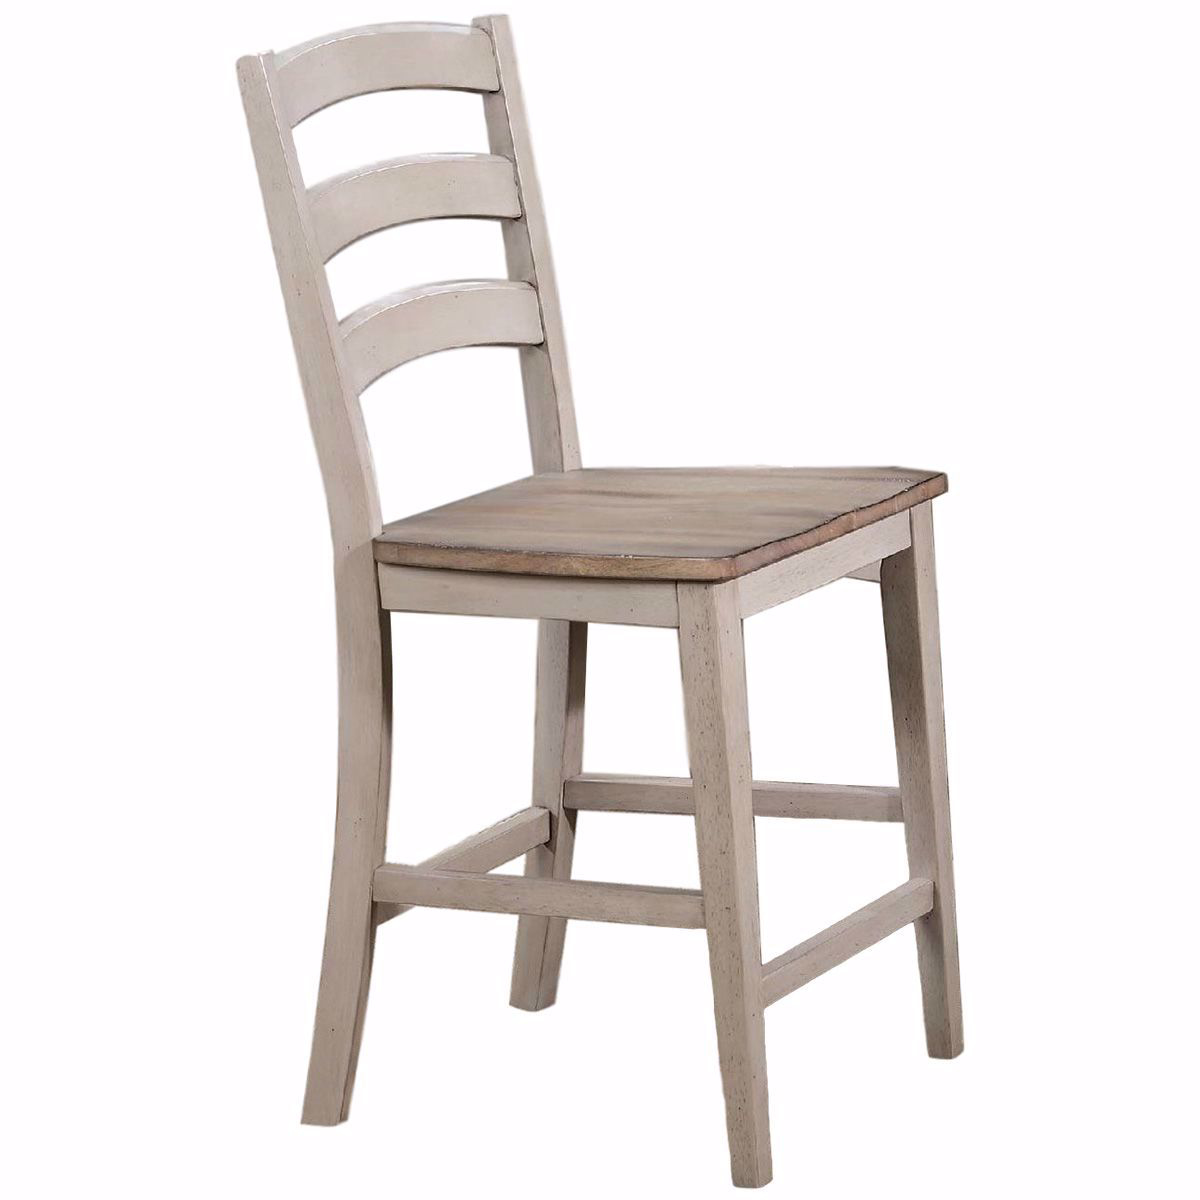 Picture of Ridgeway Arched Ladderback Bar Stool